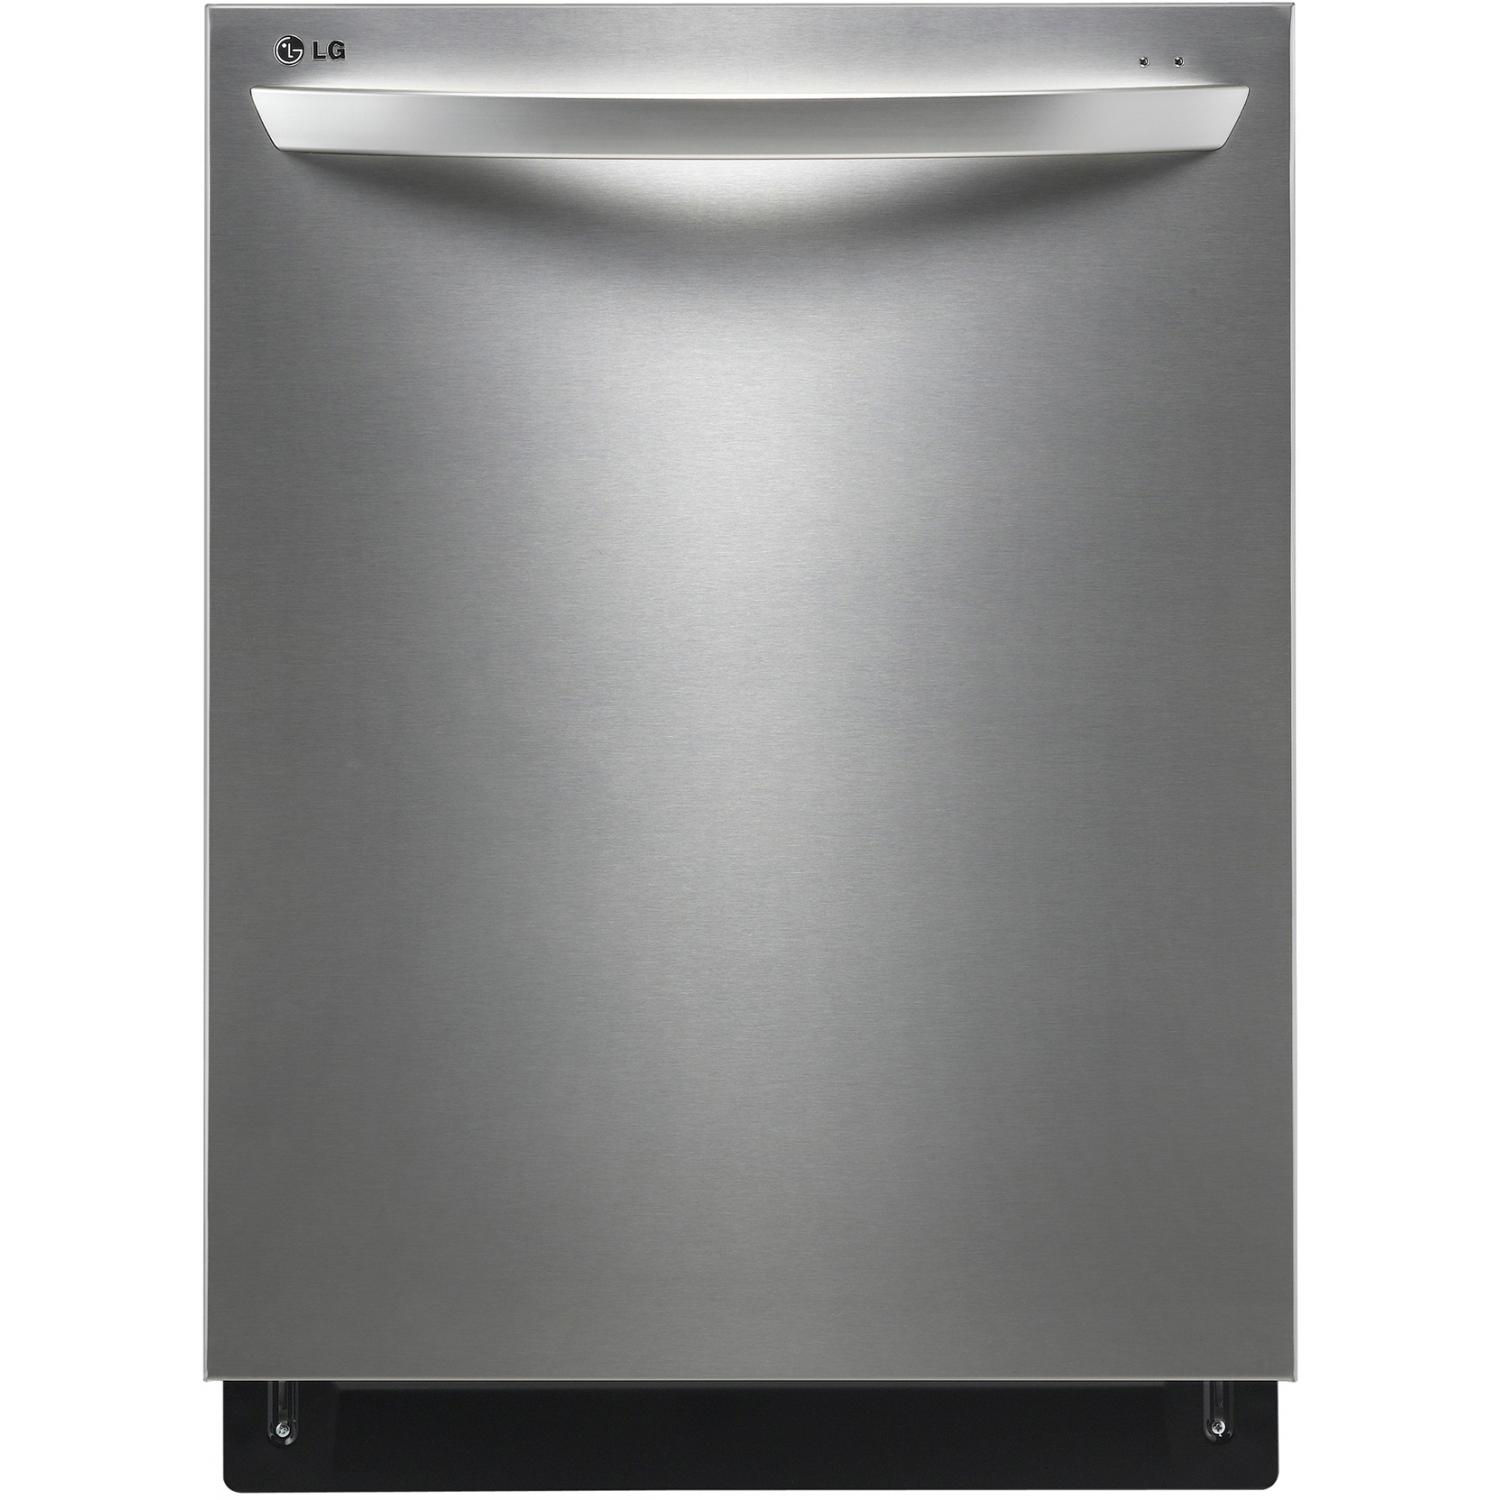 LG LDF7774ST 44-Decibel Built-In 3-Rack DishWasher - Stainless Steel 2890344